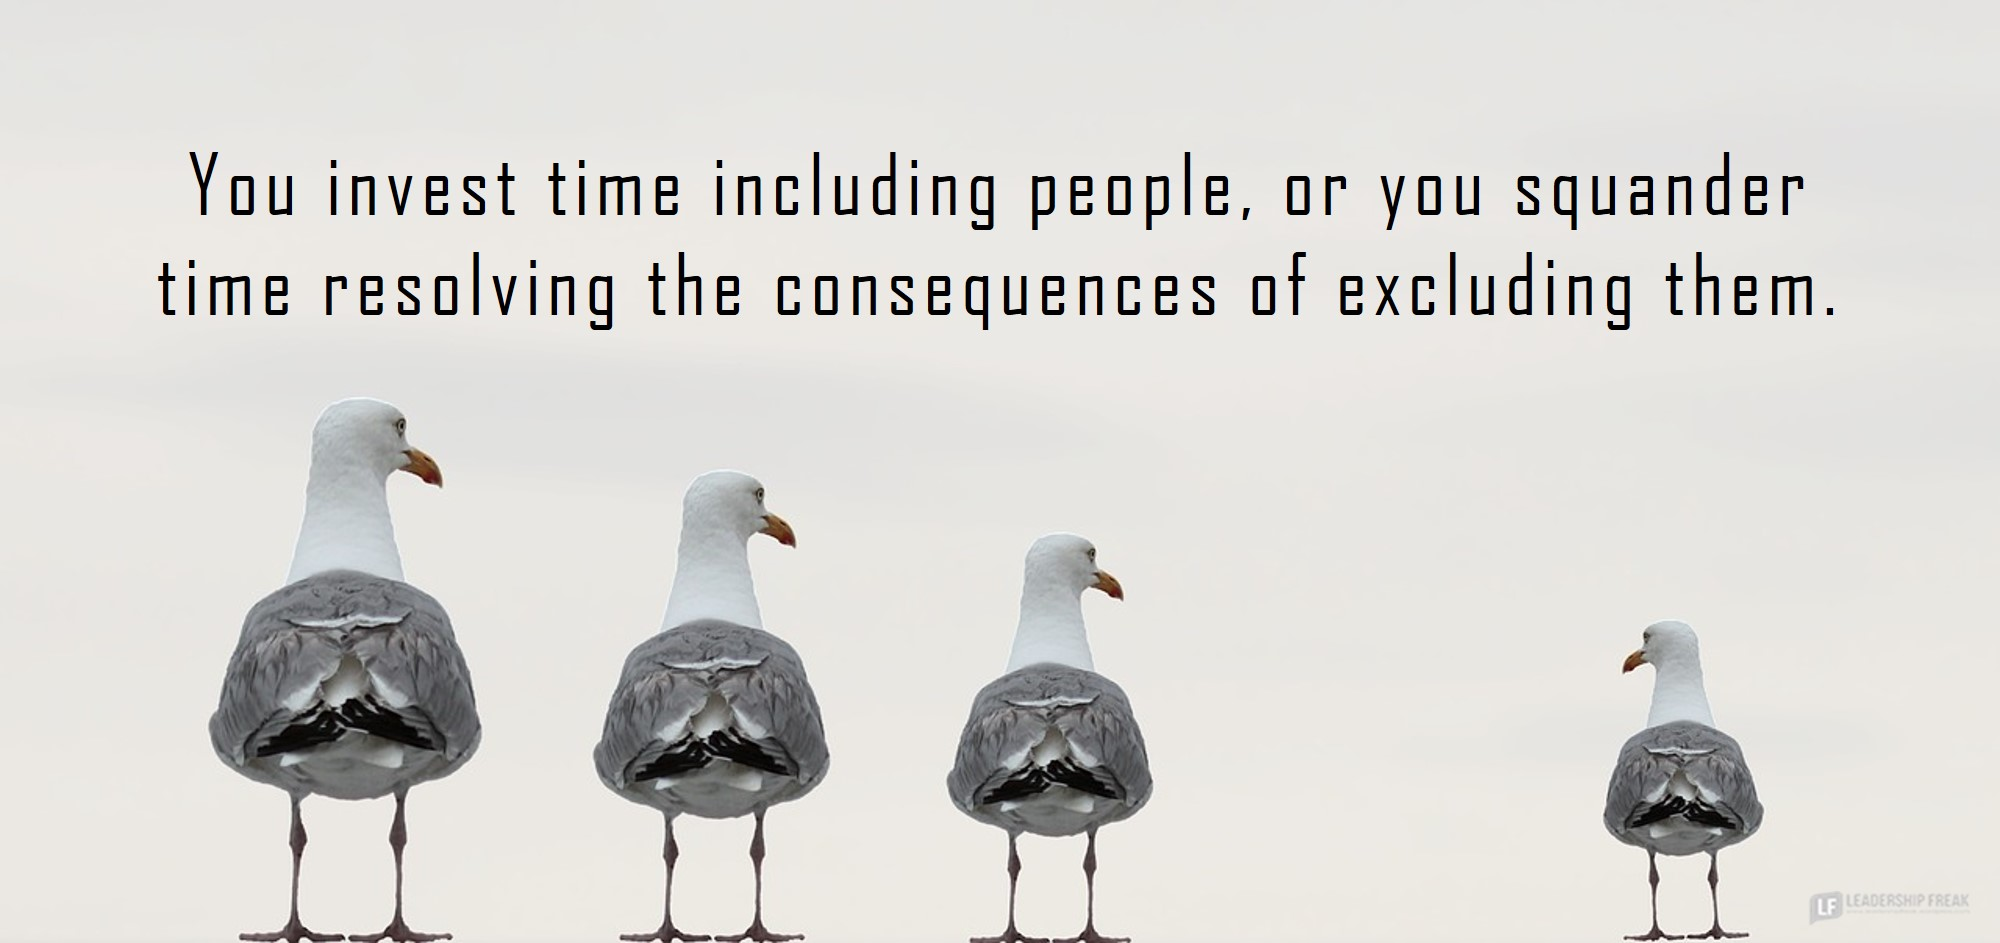 Seagulls. Excluding.  You invest time including people, or you squander time resolving the consequences of excluding them.